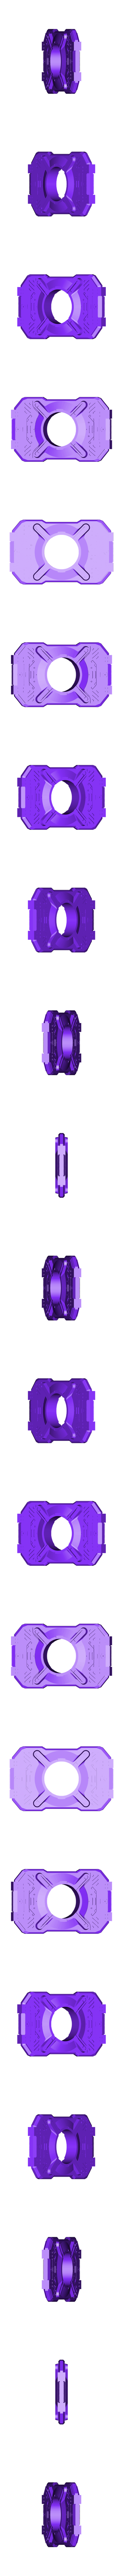 cortana chip.stl Download STL file Halo - Cortana chip HD • 3D printable template, spyder-atelier